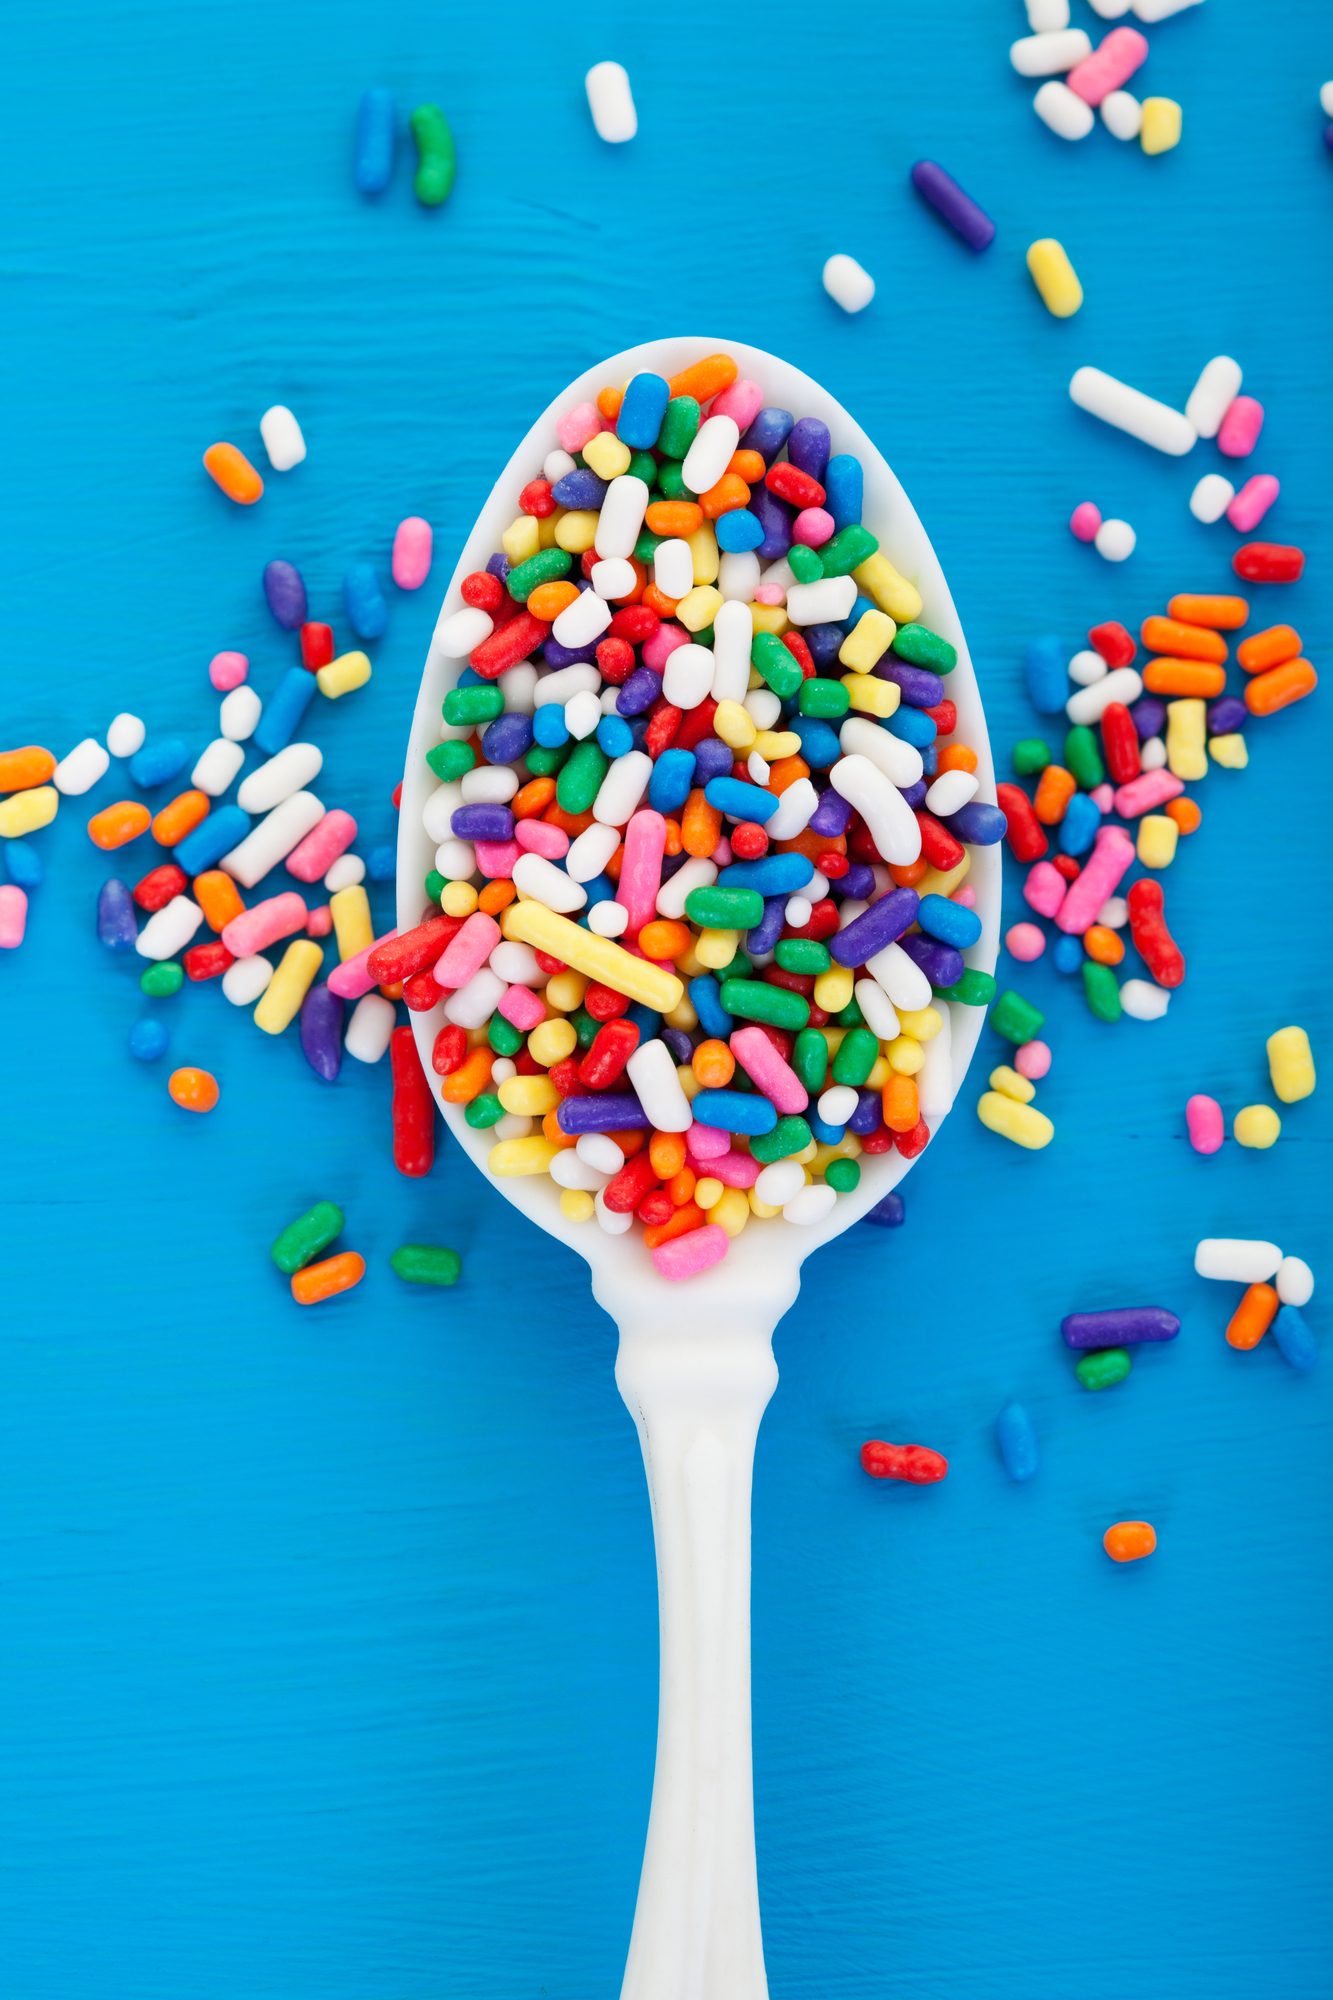 A white spoon with rainbow sprinkles on it and around it against a blue background